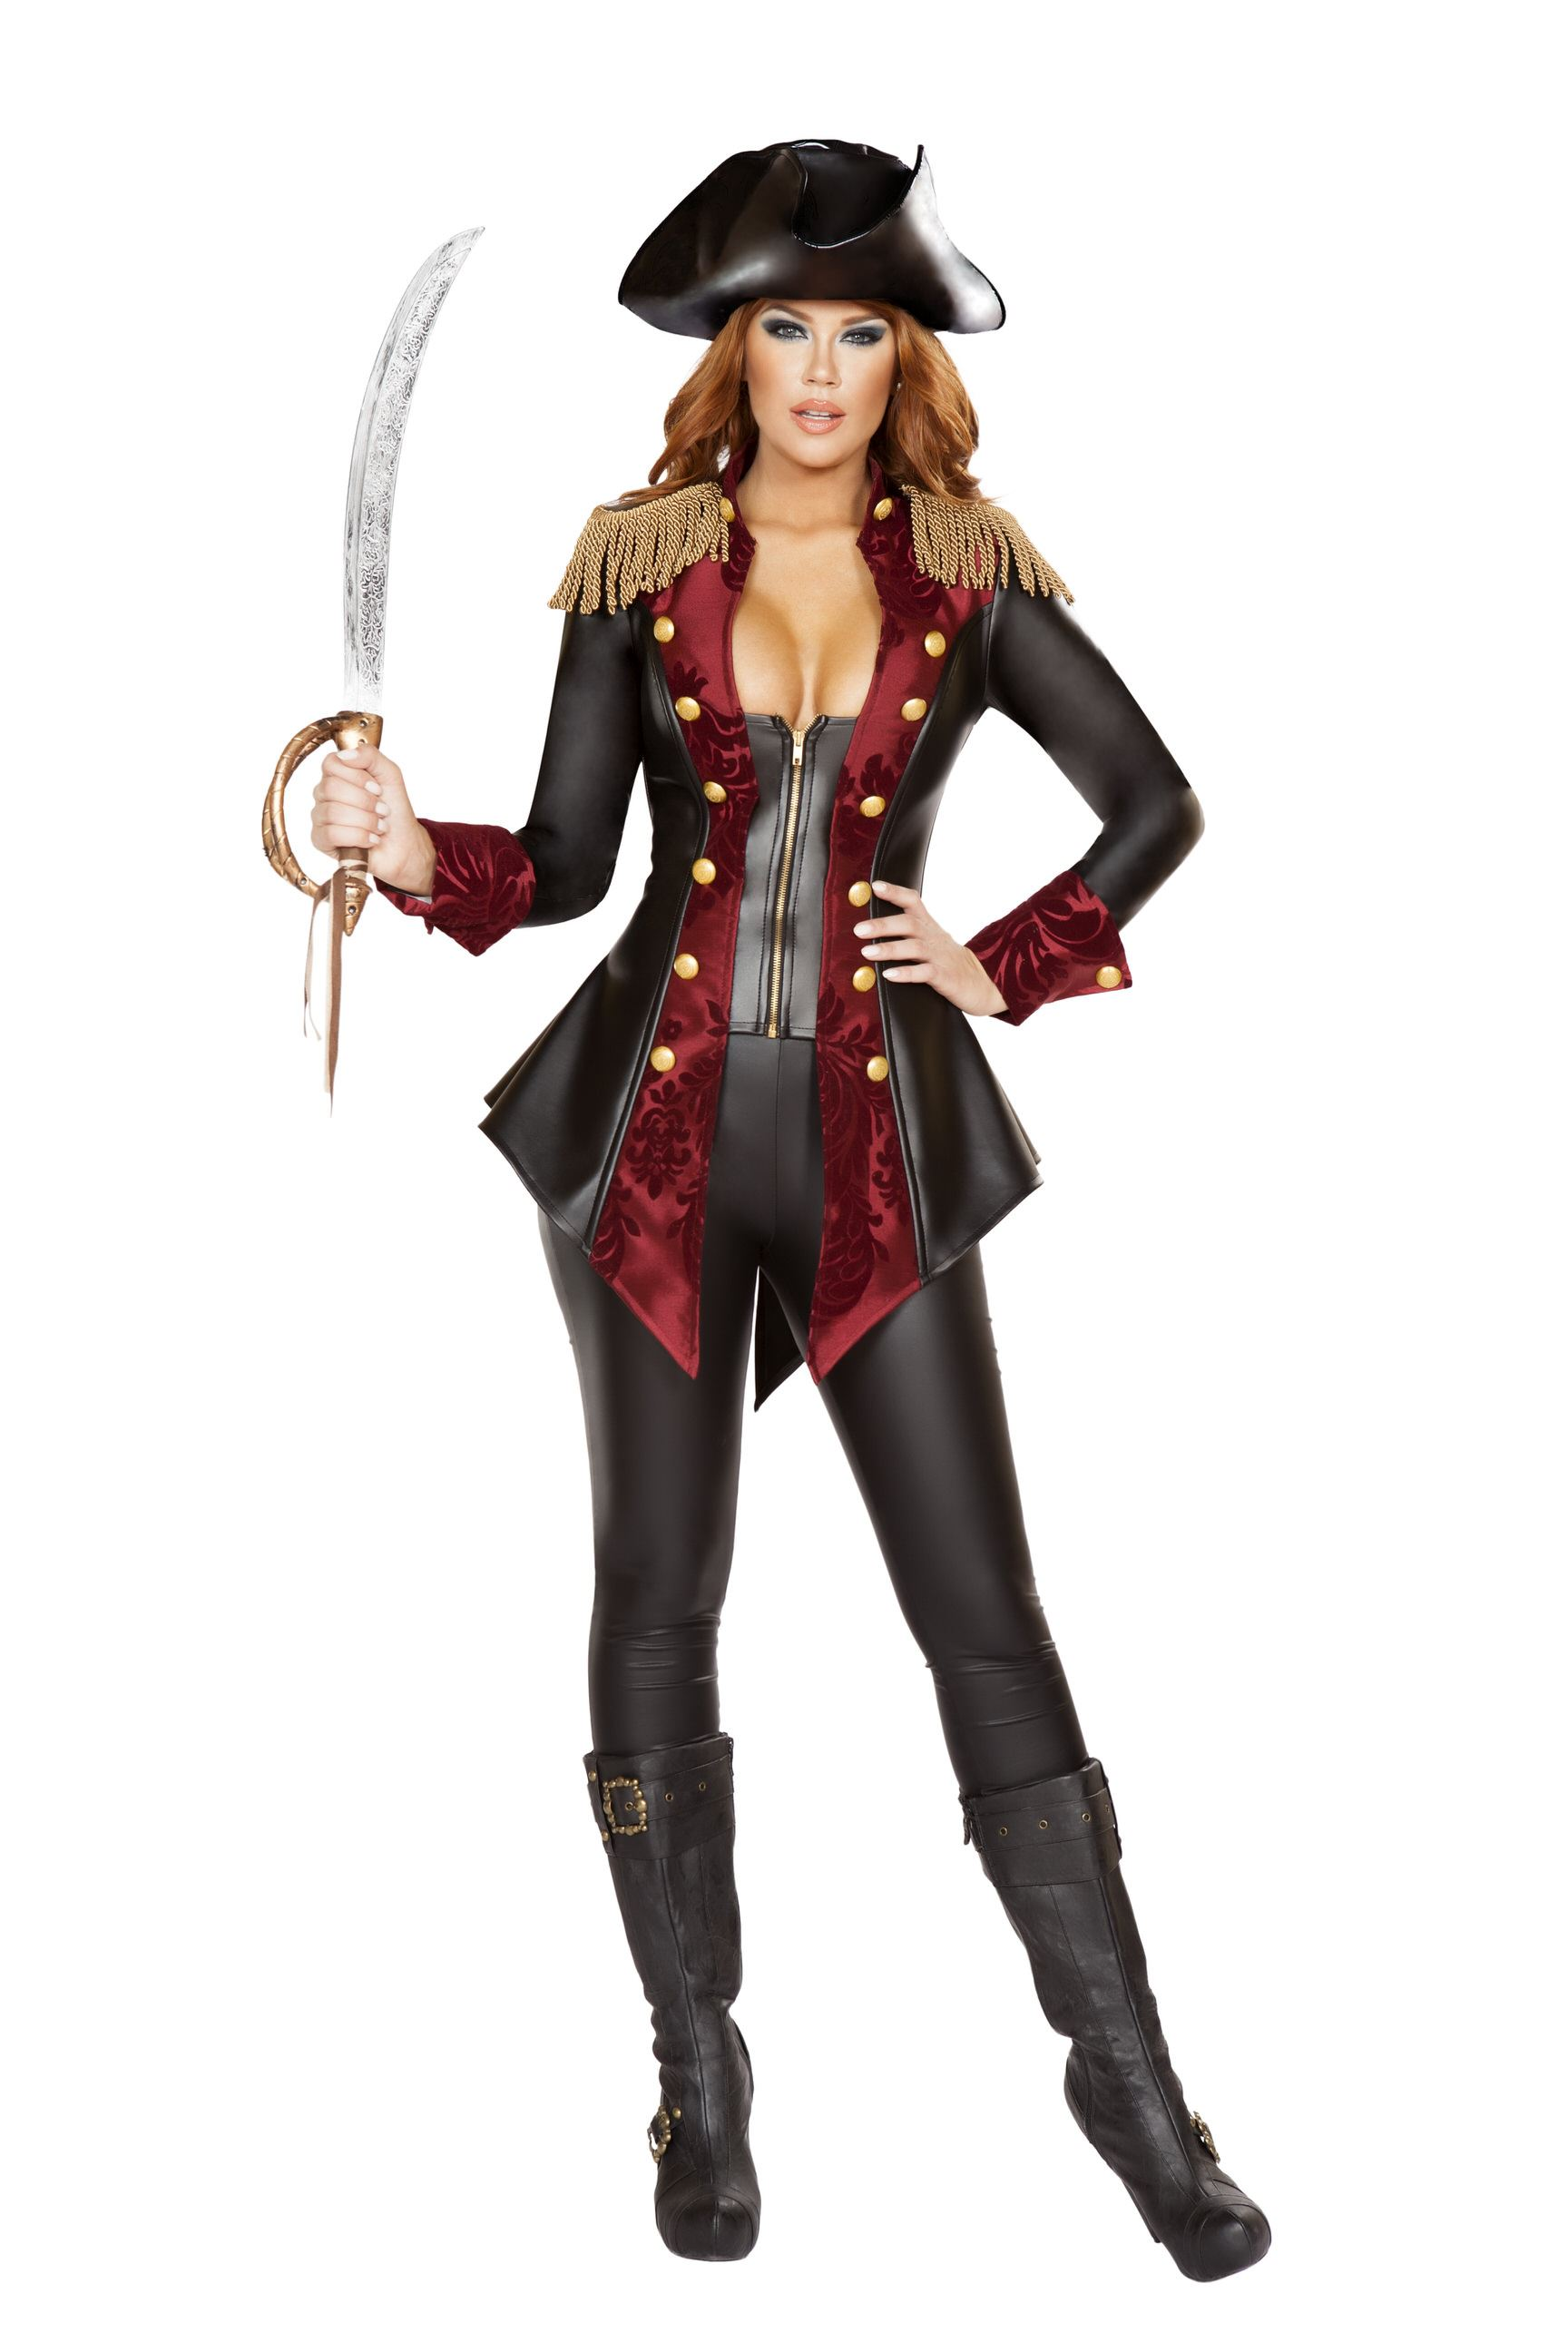 Consider, that Sexy pirate halloween costume